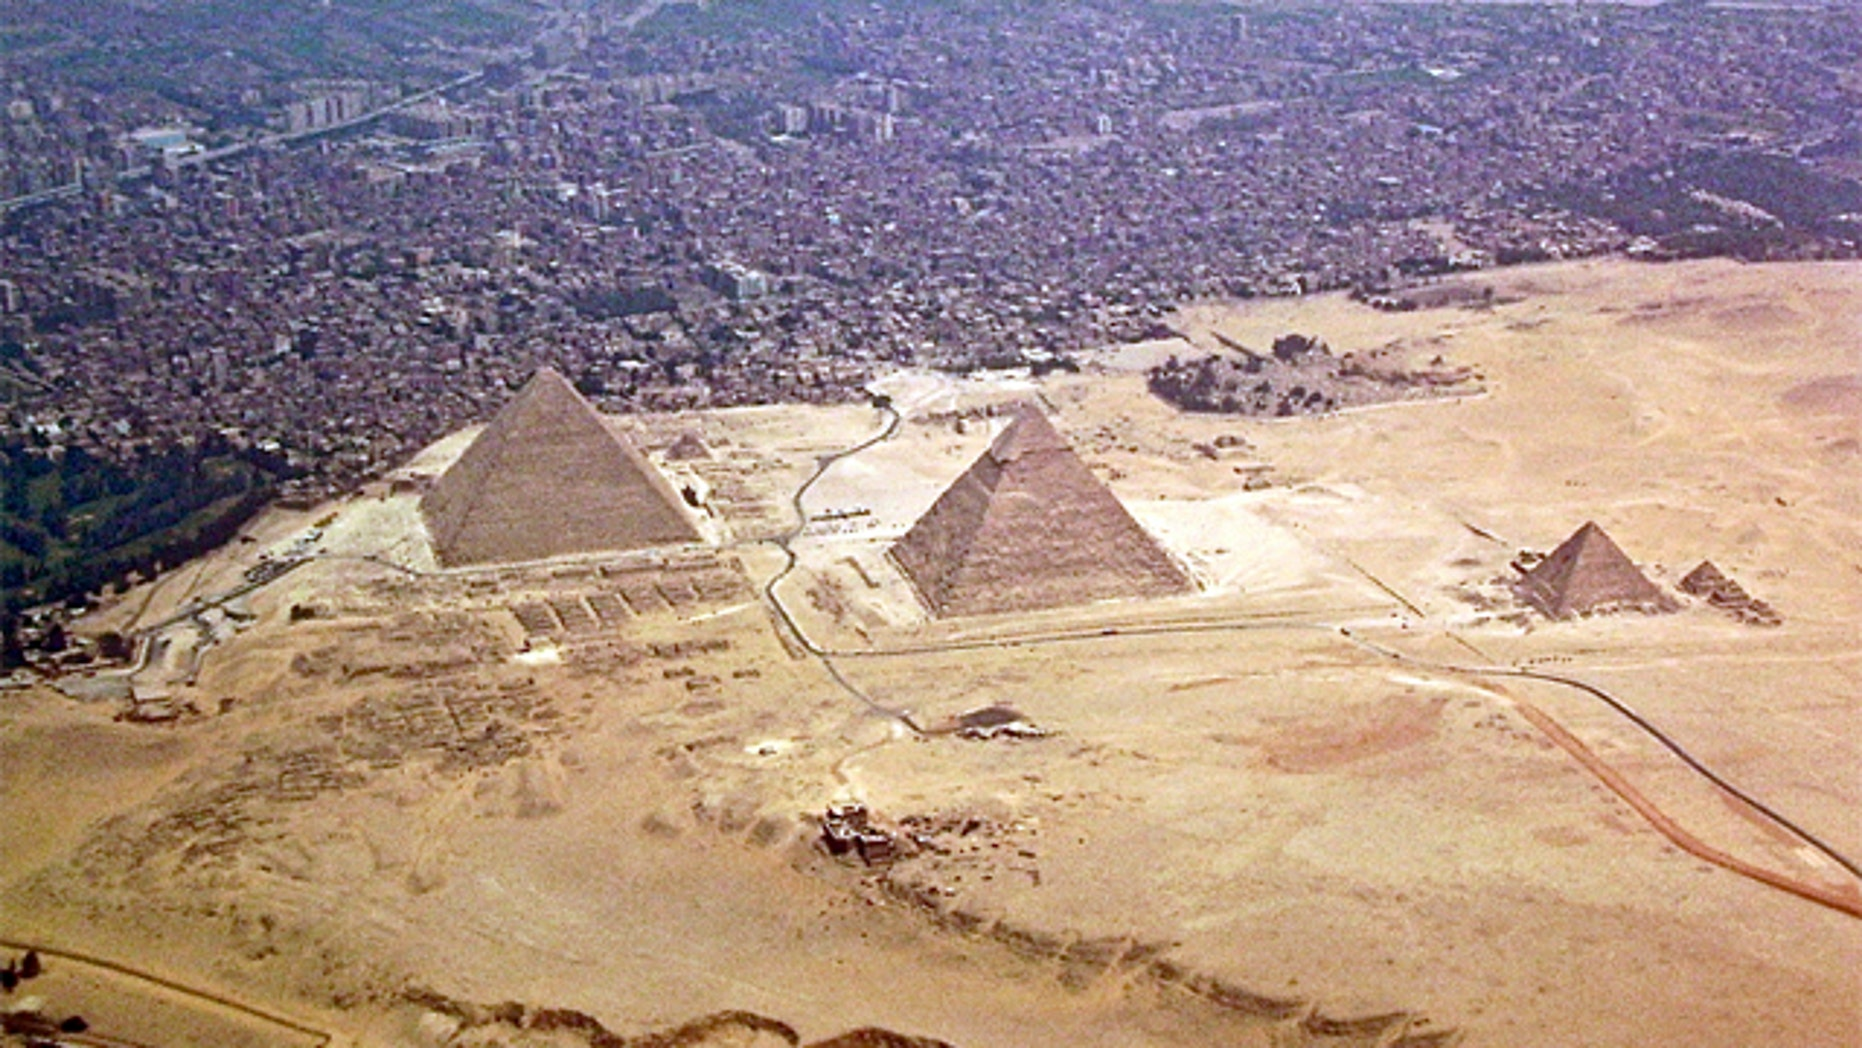 Infrared imaging was used to locate ancient buried pyramids.